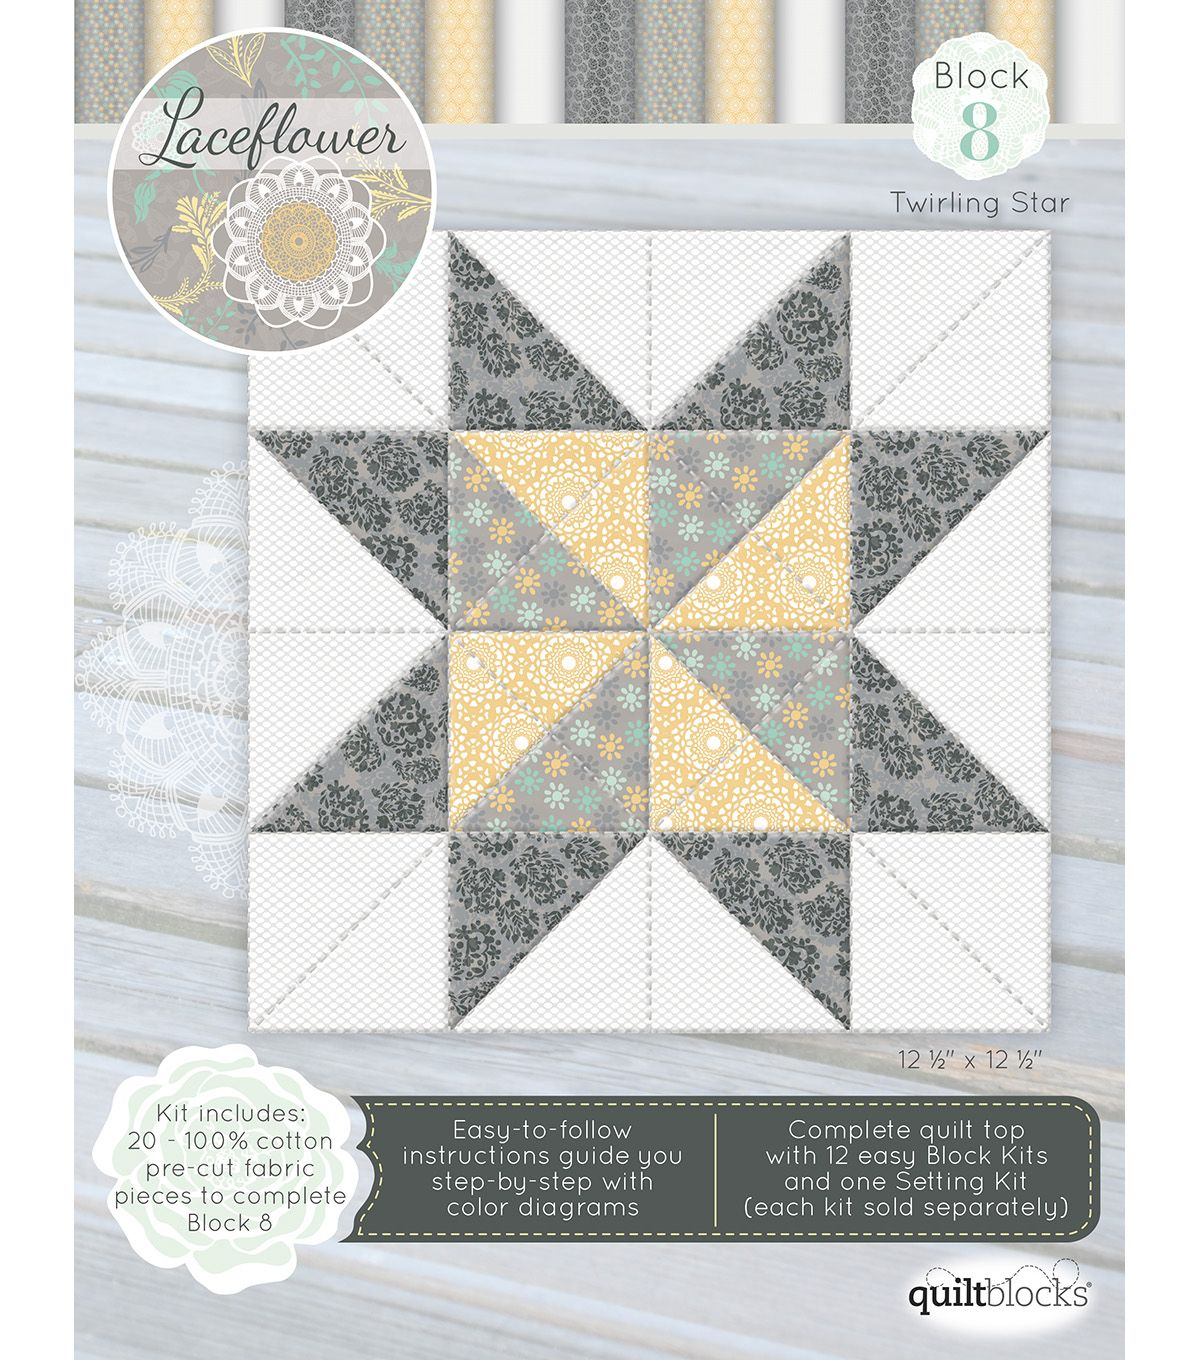 Quilt Block of the Month Cotton Fabric-Laceflower Block 8